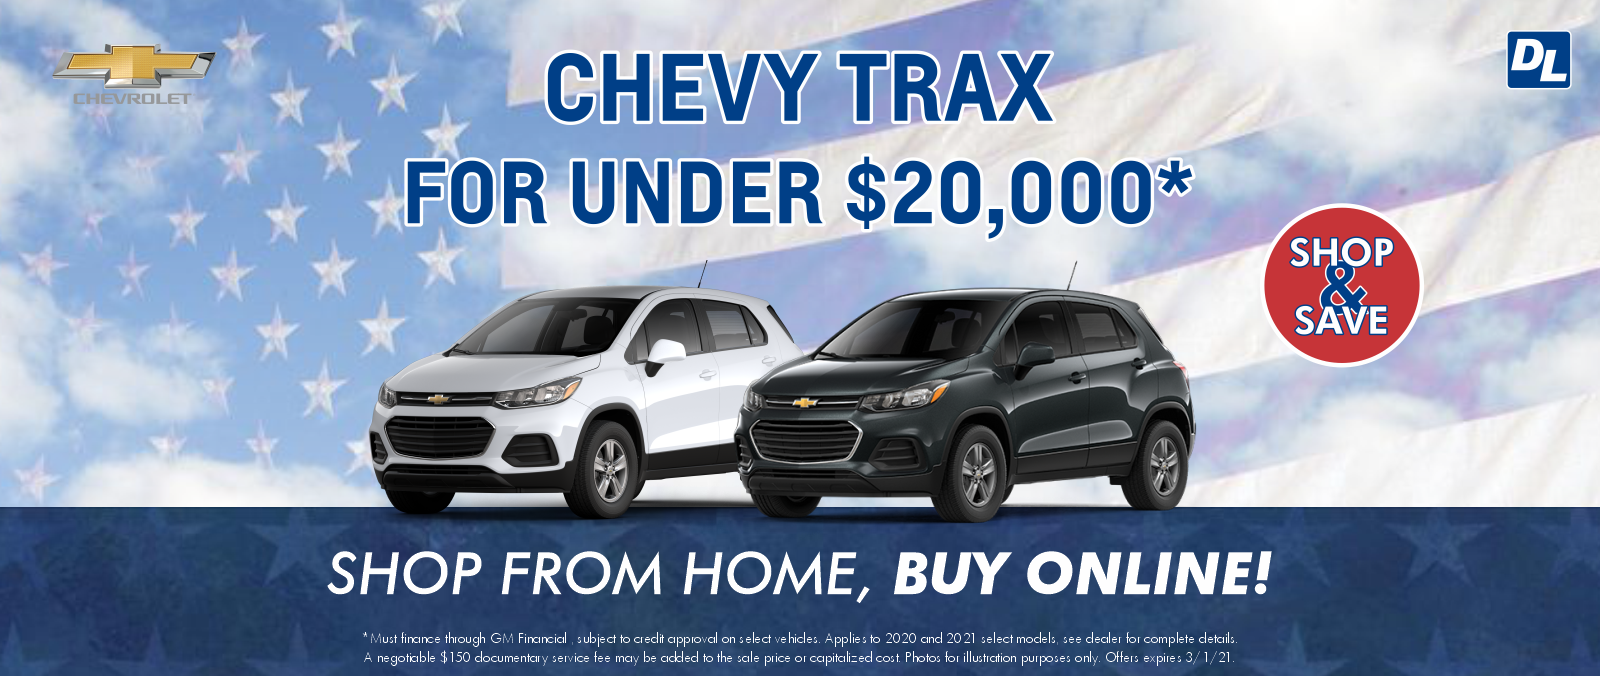 2021FebBanners-ChevyTrax